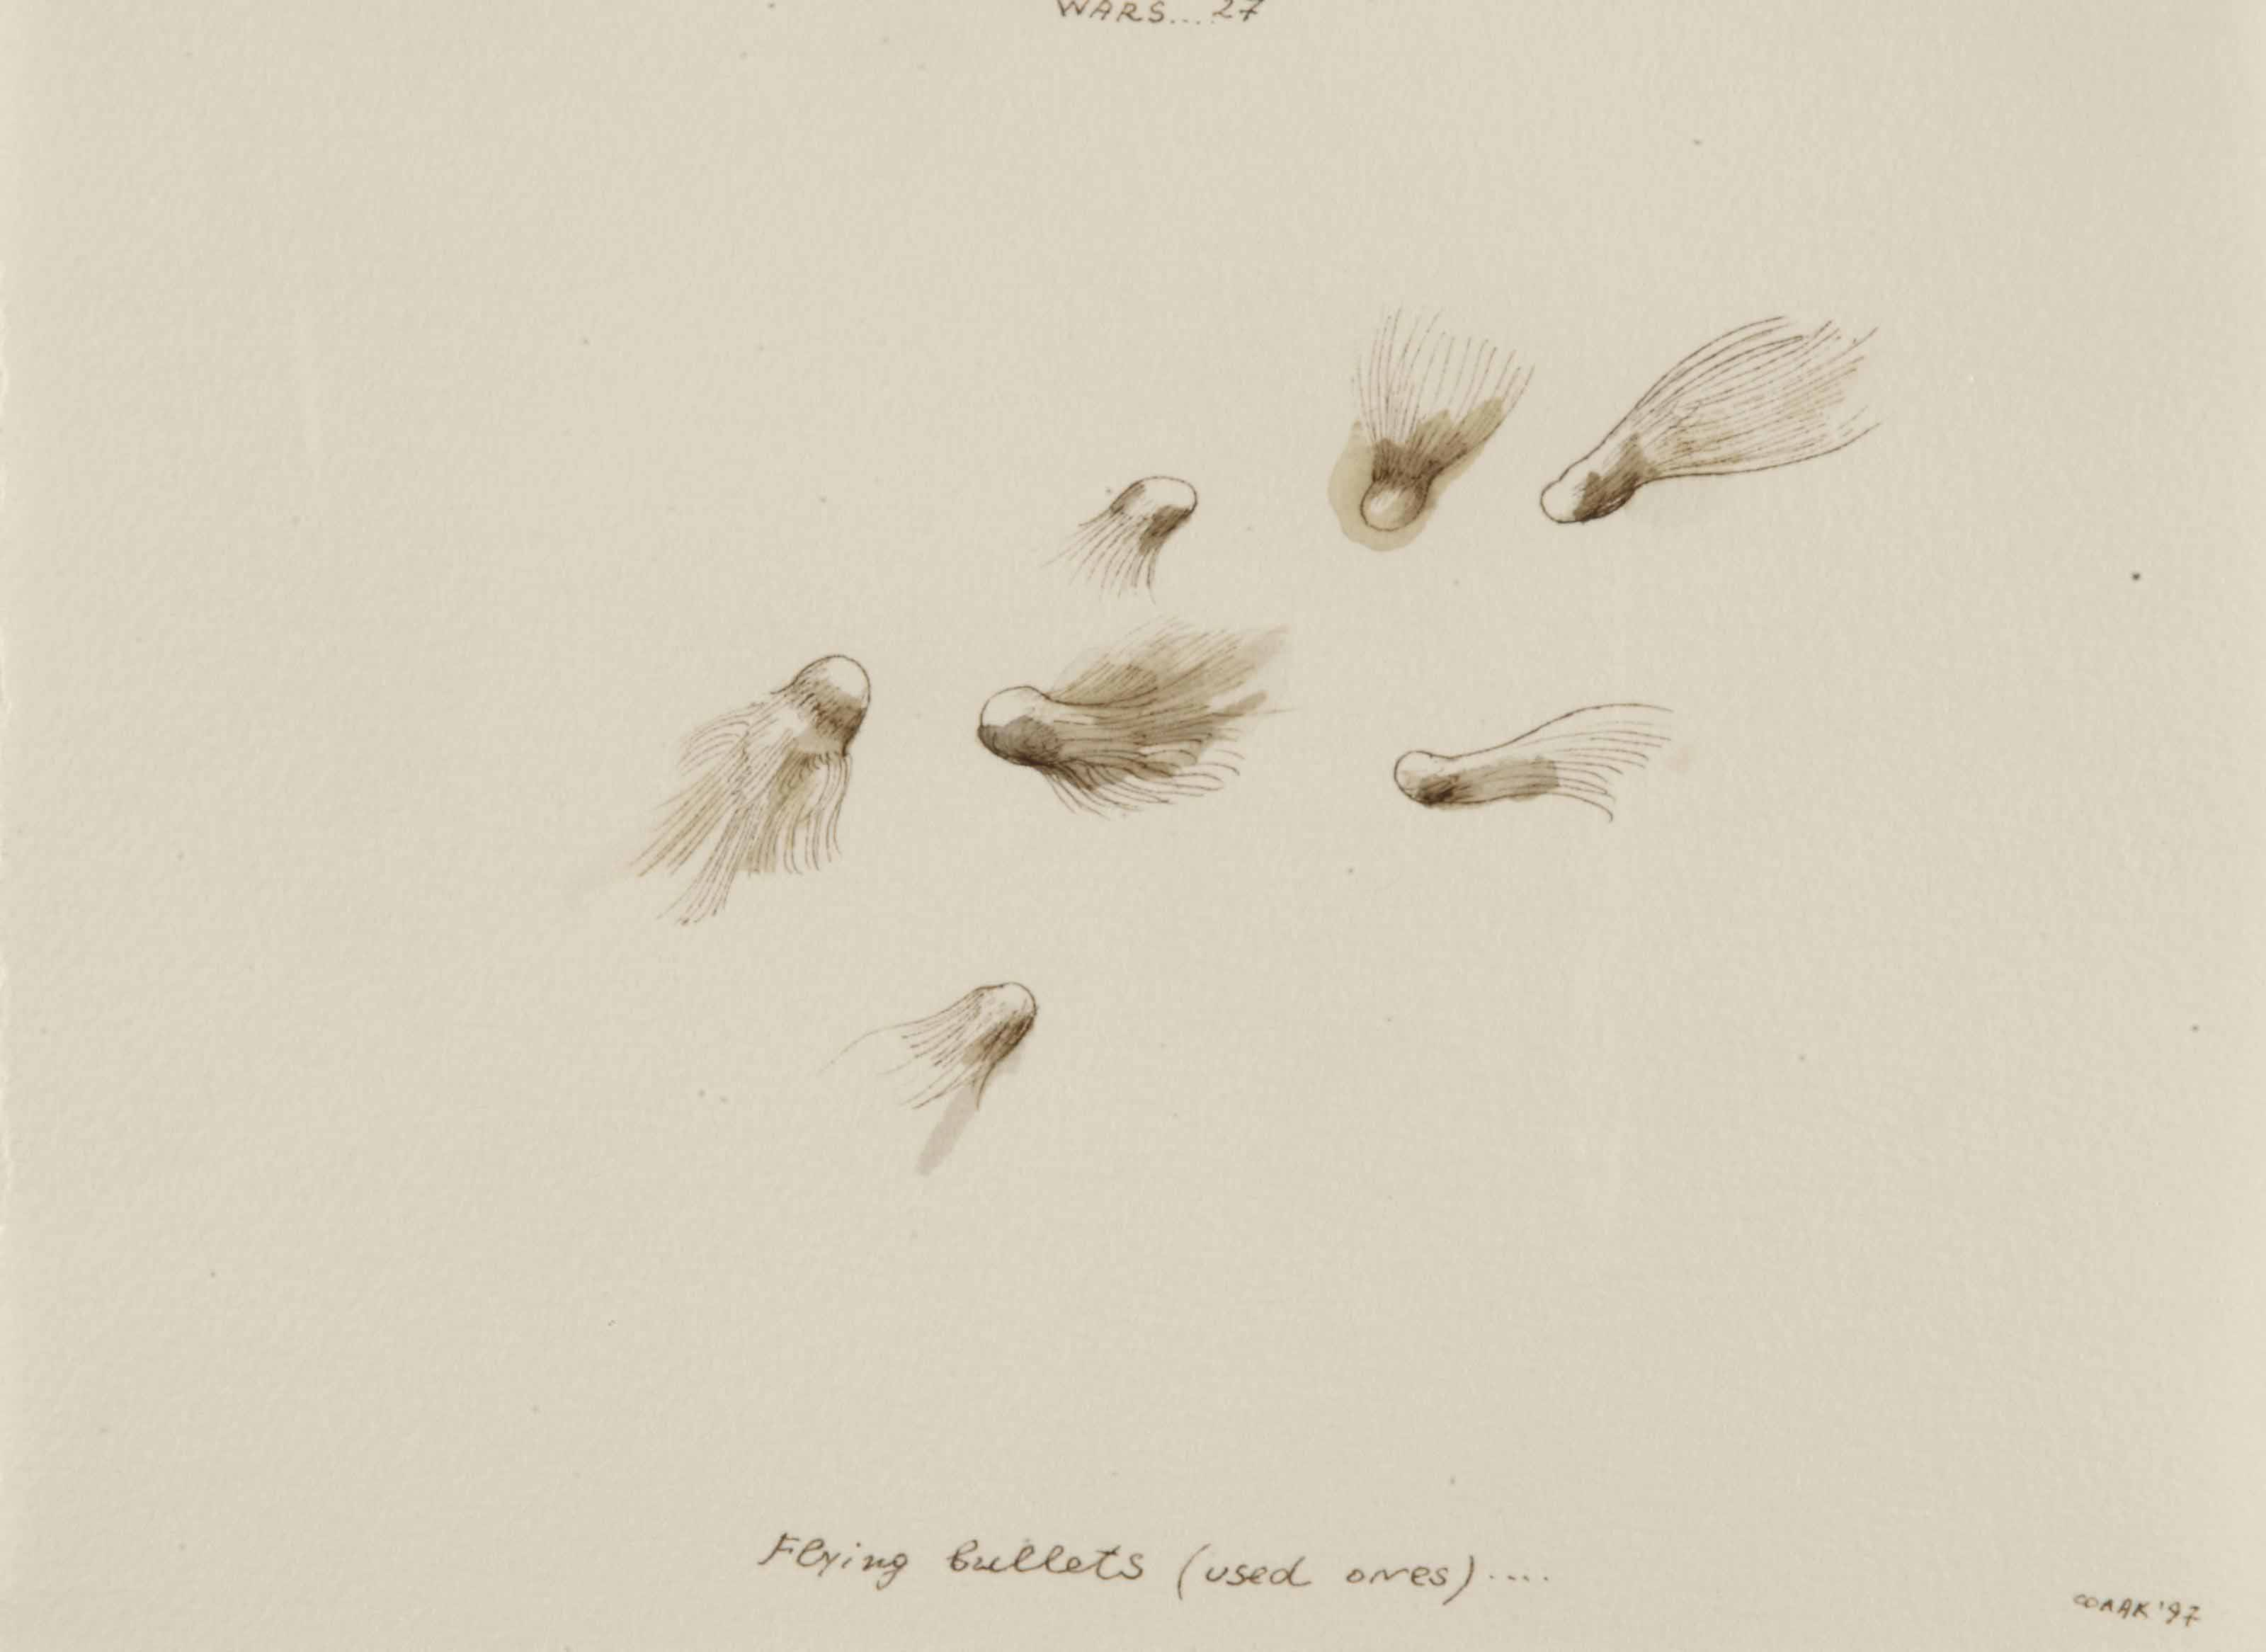 Wars....27 (flying bullets (used ones)....) (lower right)